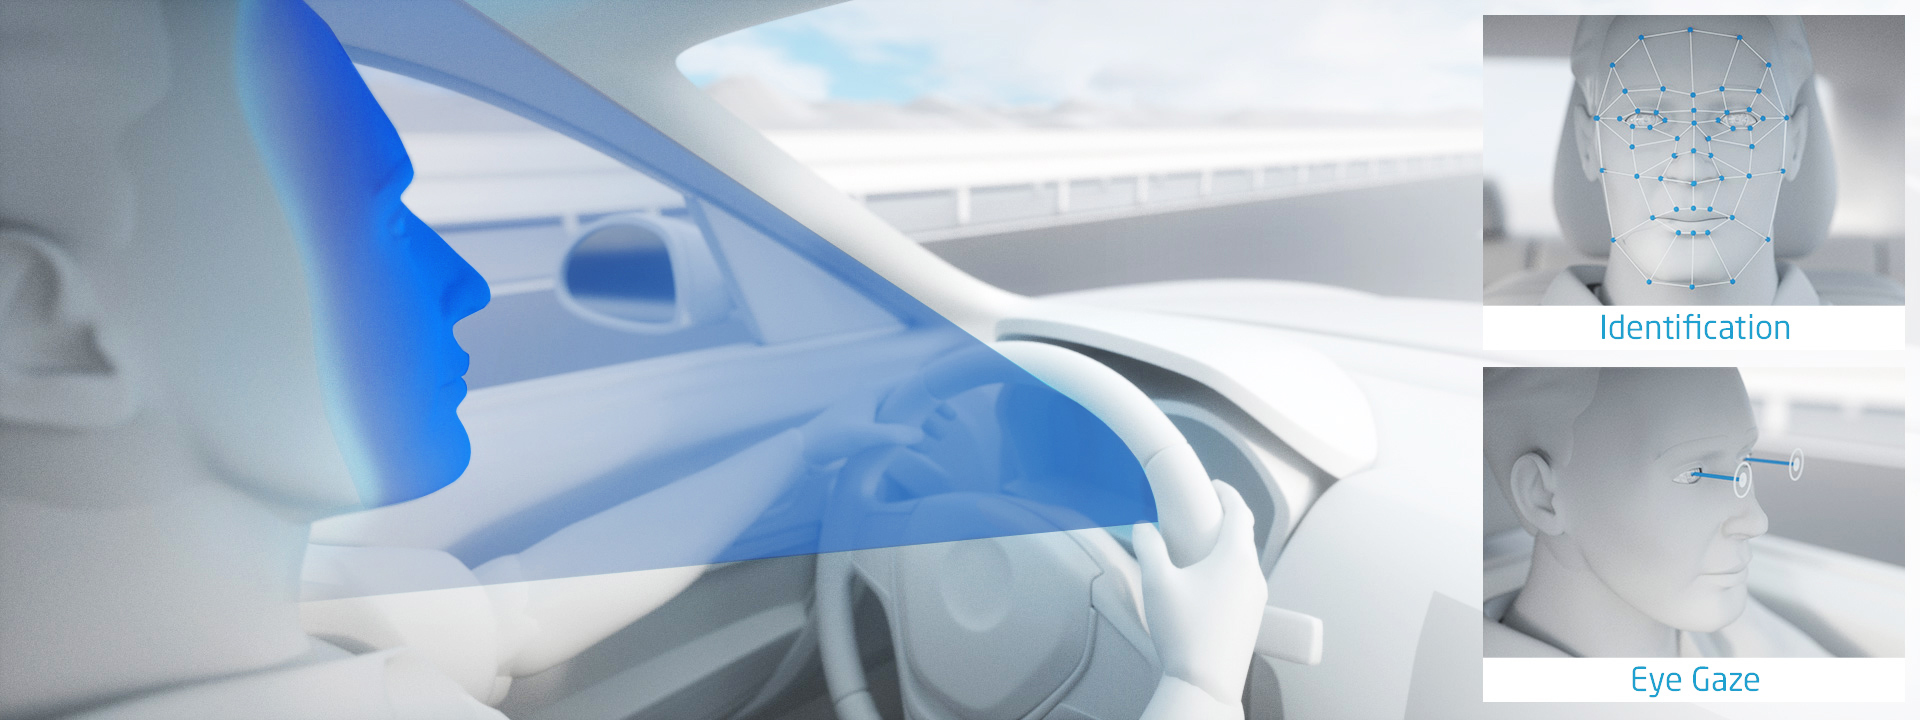 artificial-intelligence-car-interior-sensing-rendered-human-inside-vehicle